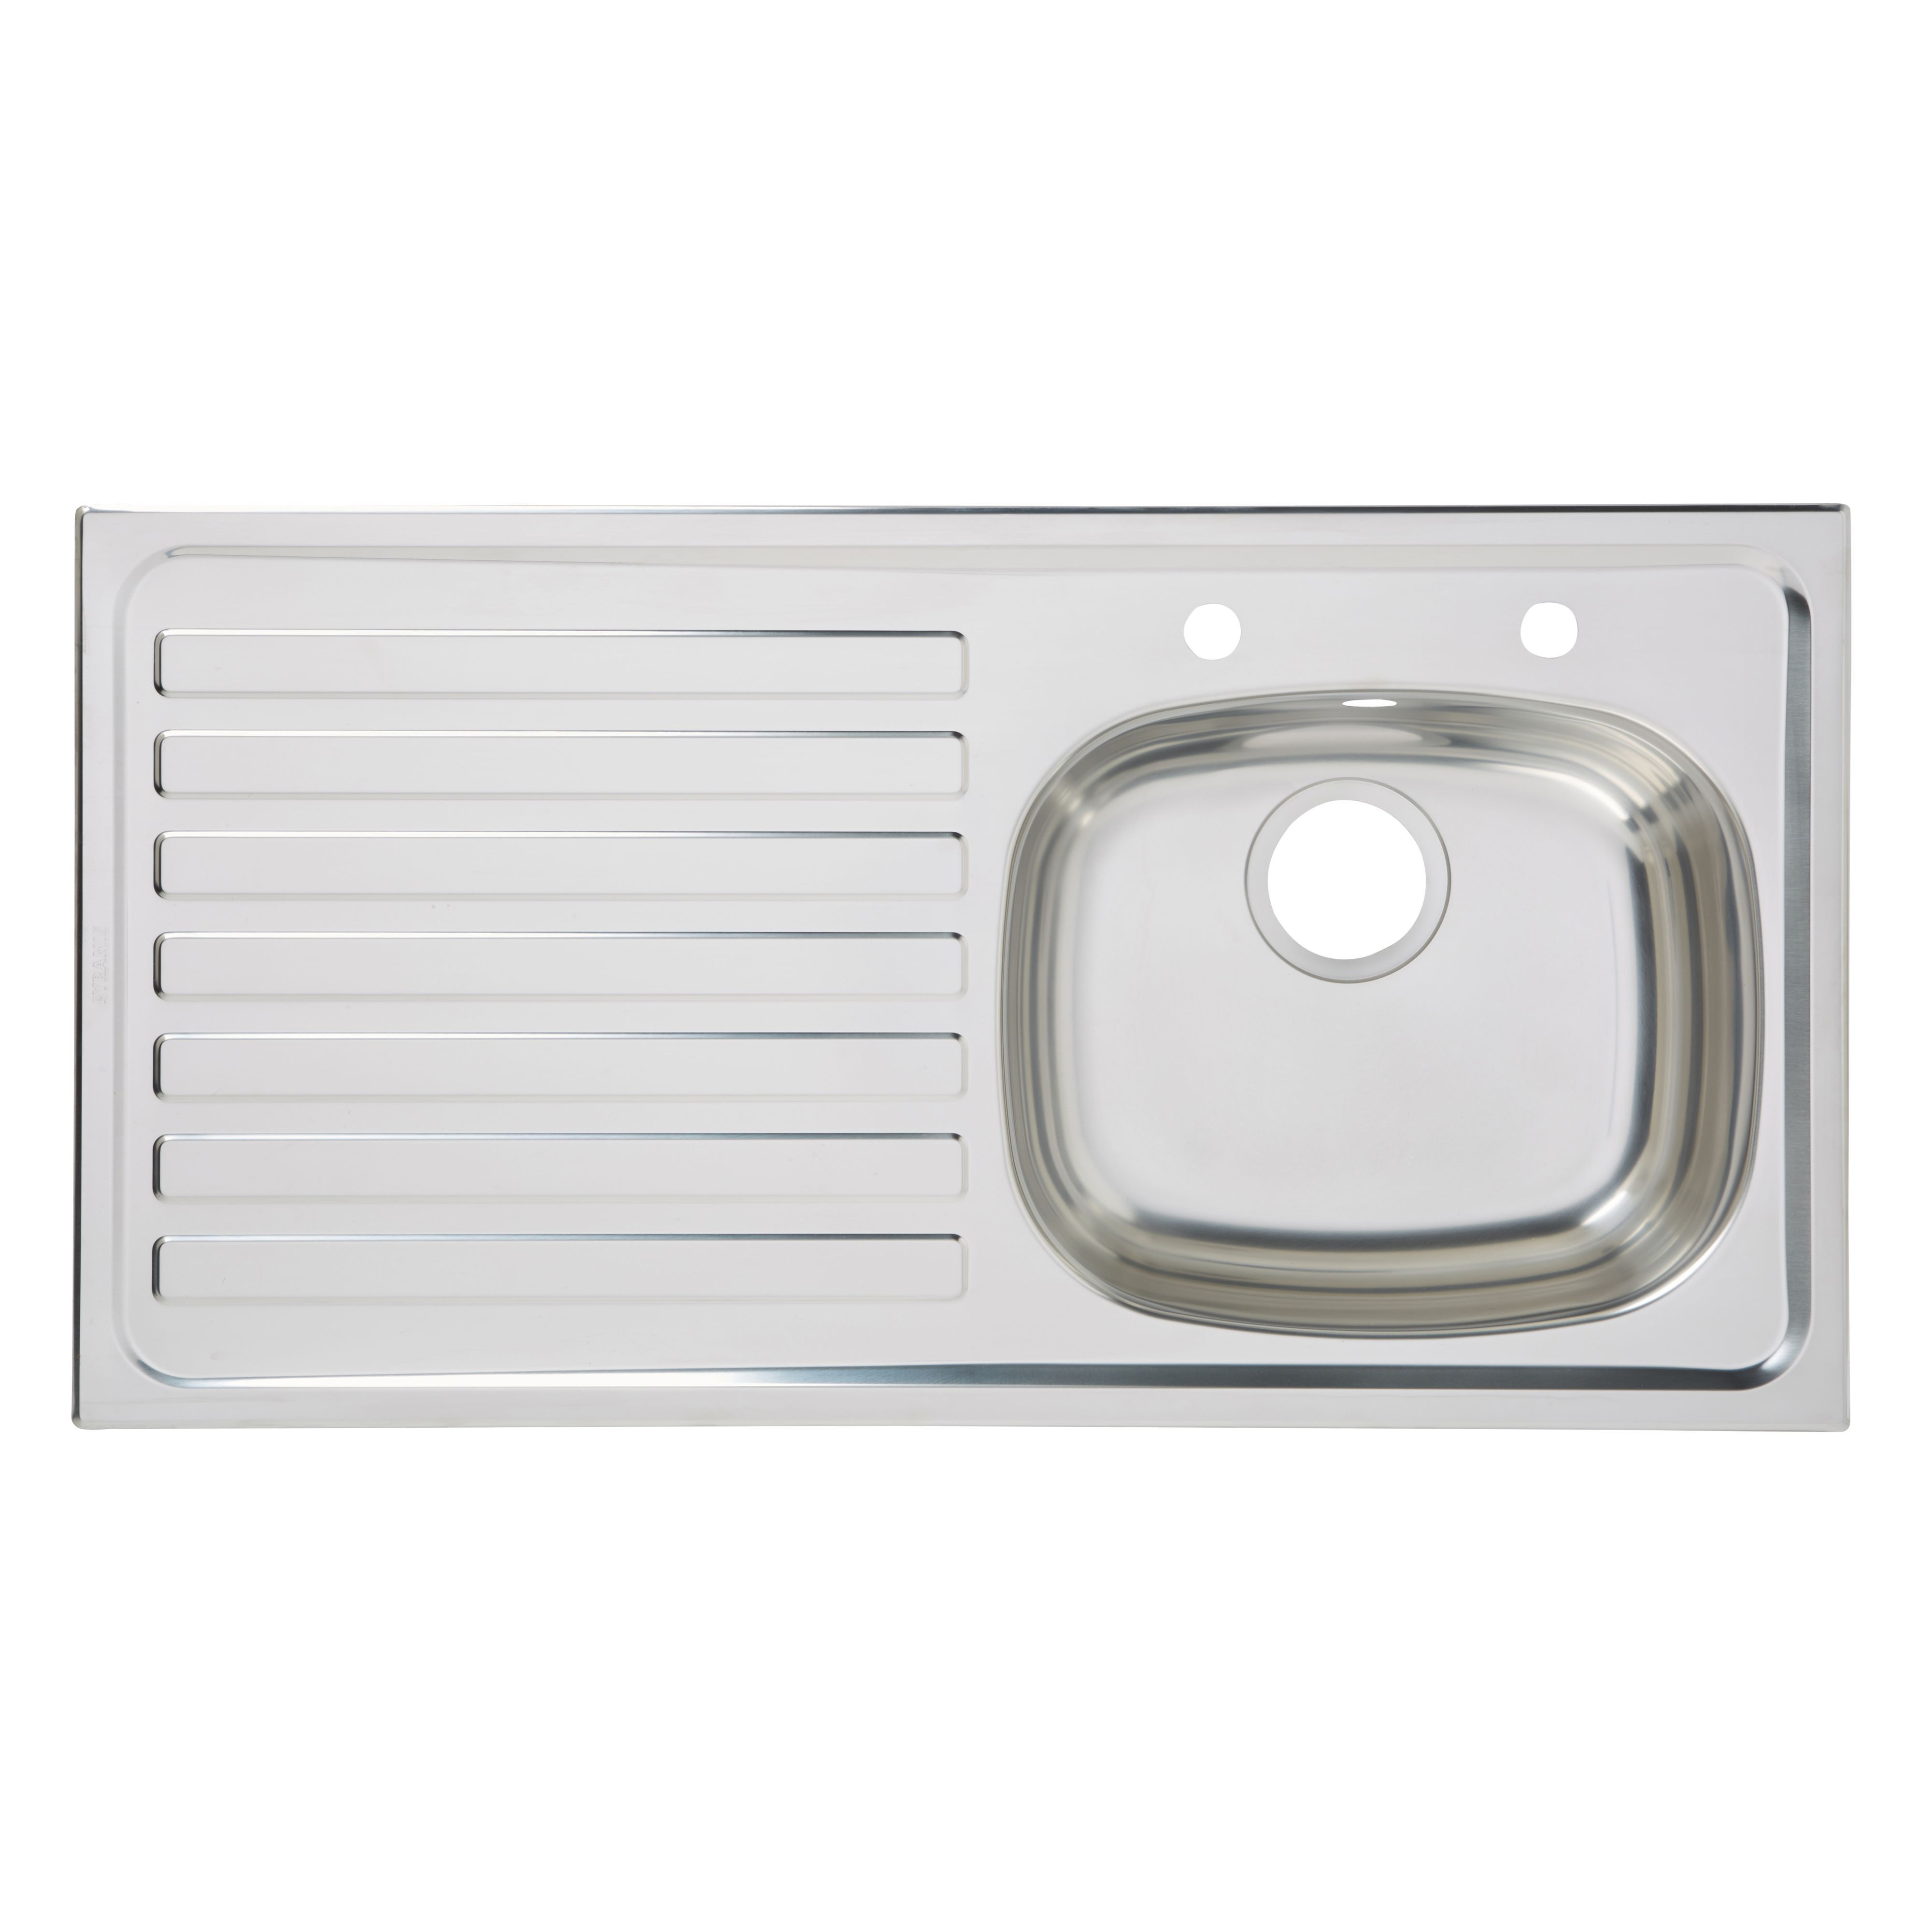 b and q kitchen sink utility 1 bowl polished stainless steel sink amp lh drainer 7541